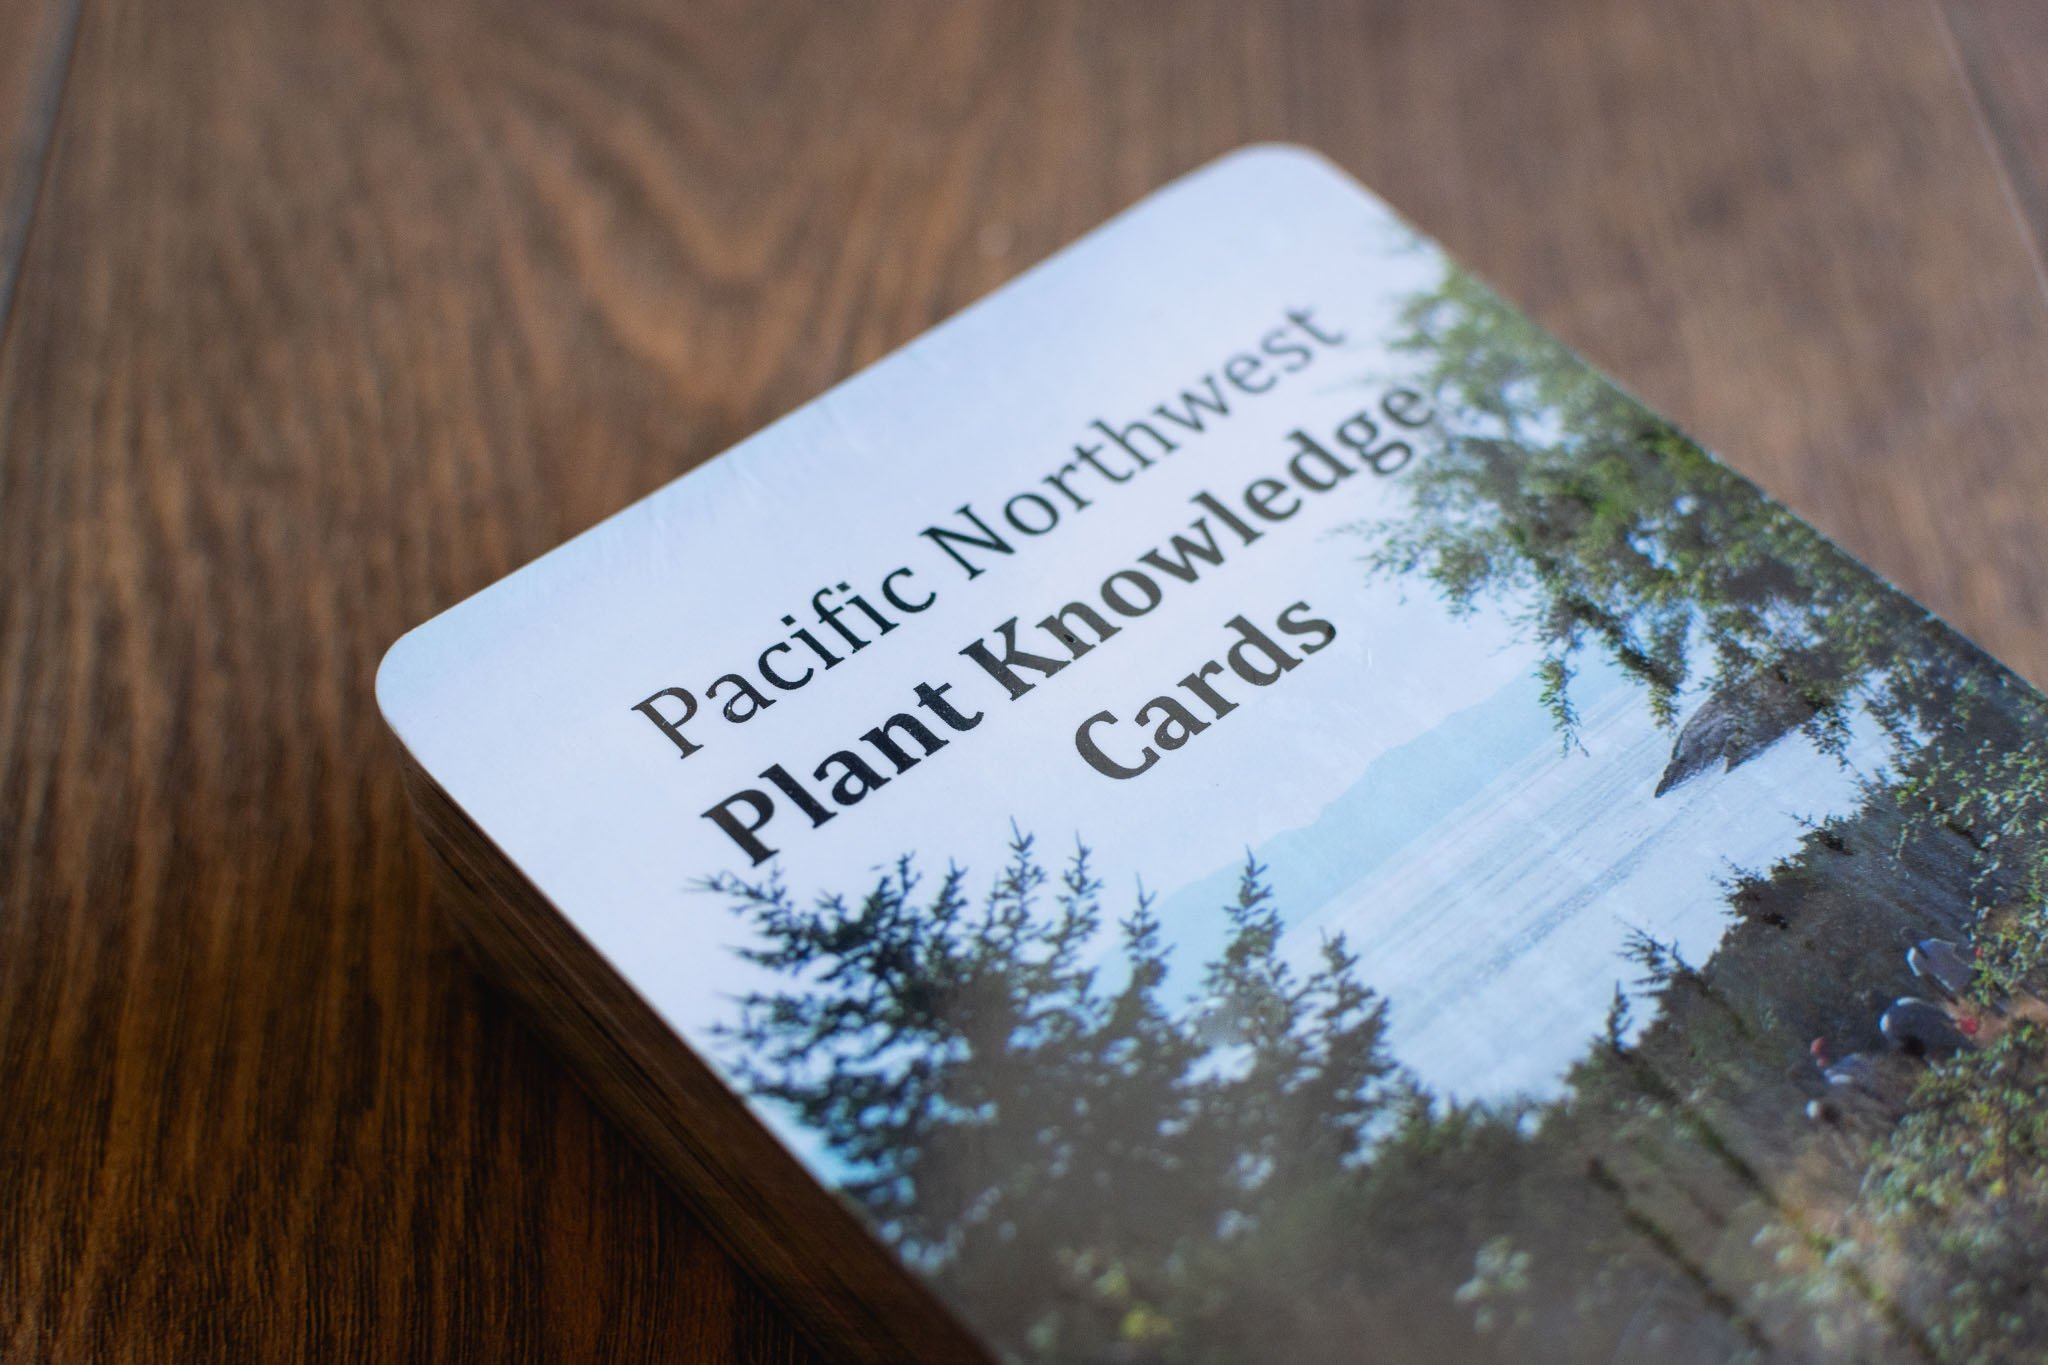 Pacific Northwest Plant Knowledge Cards by Strong Nations